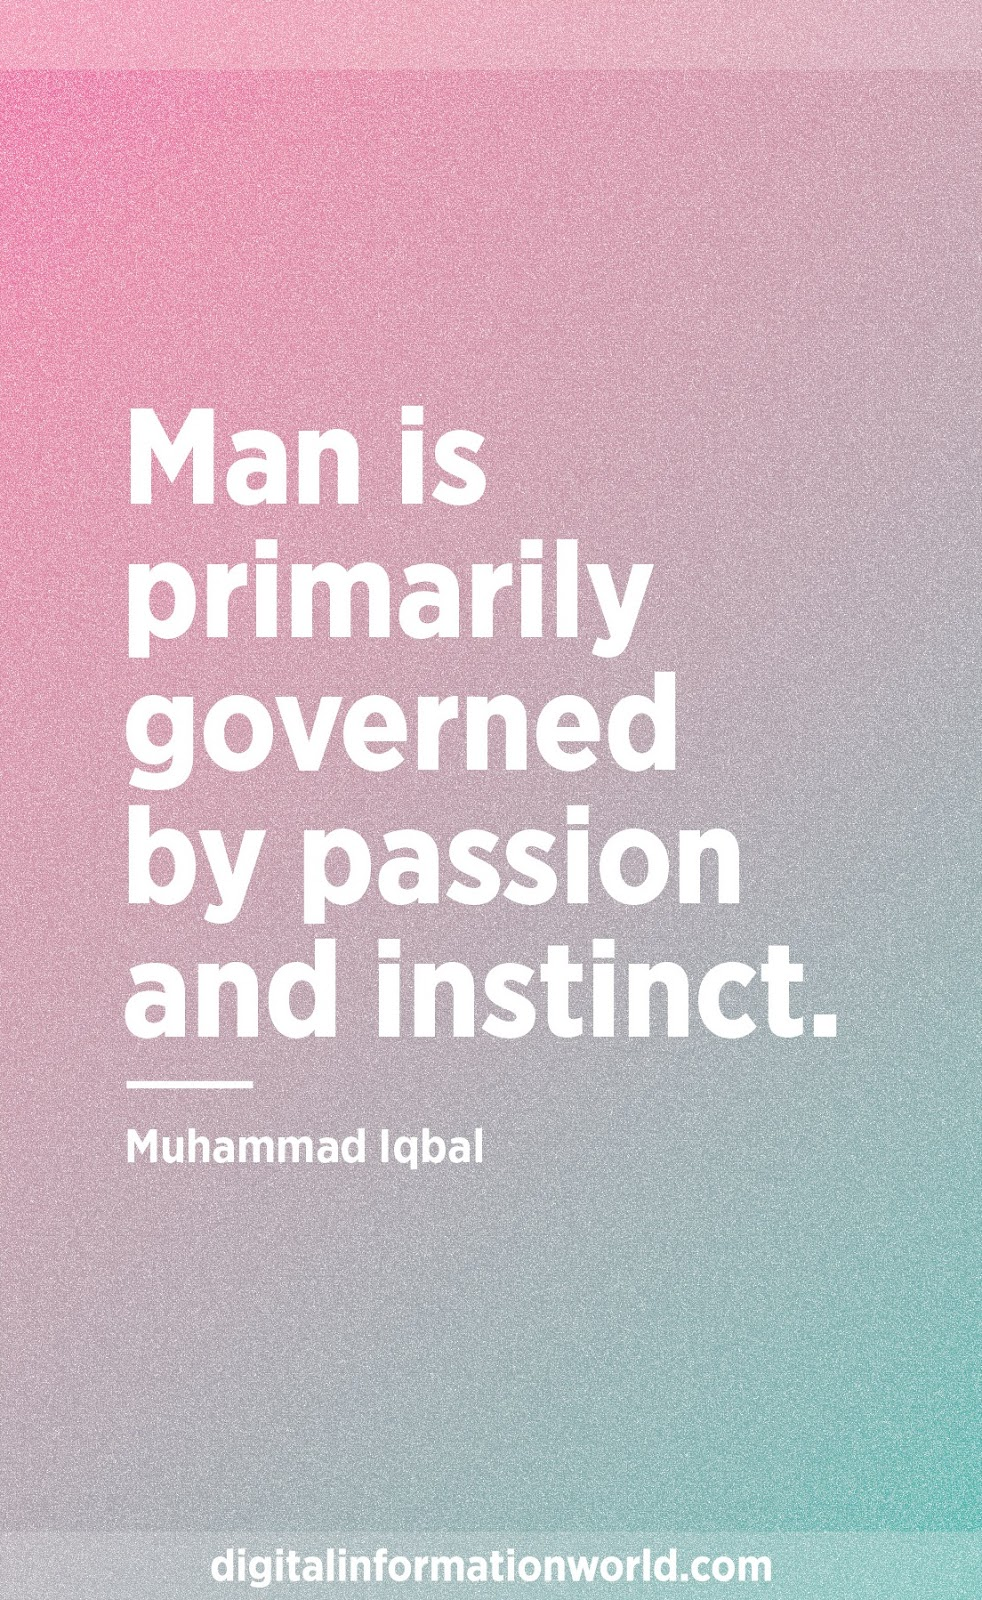 Man is primarily governed by passion and instinct. Muhammad Iqbal